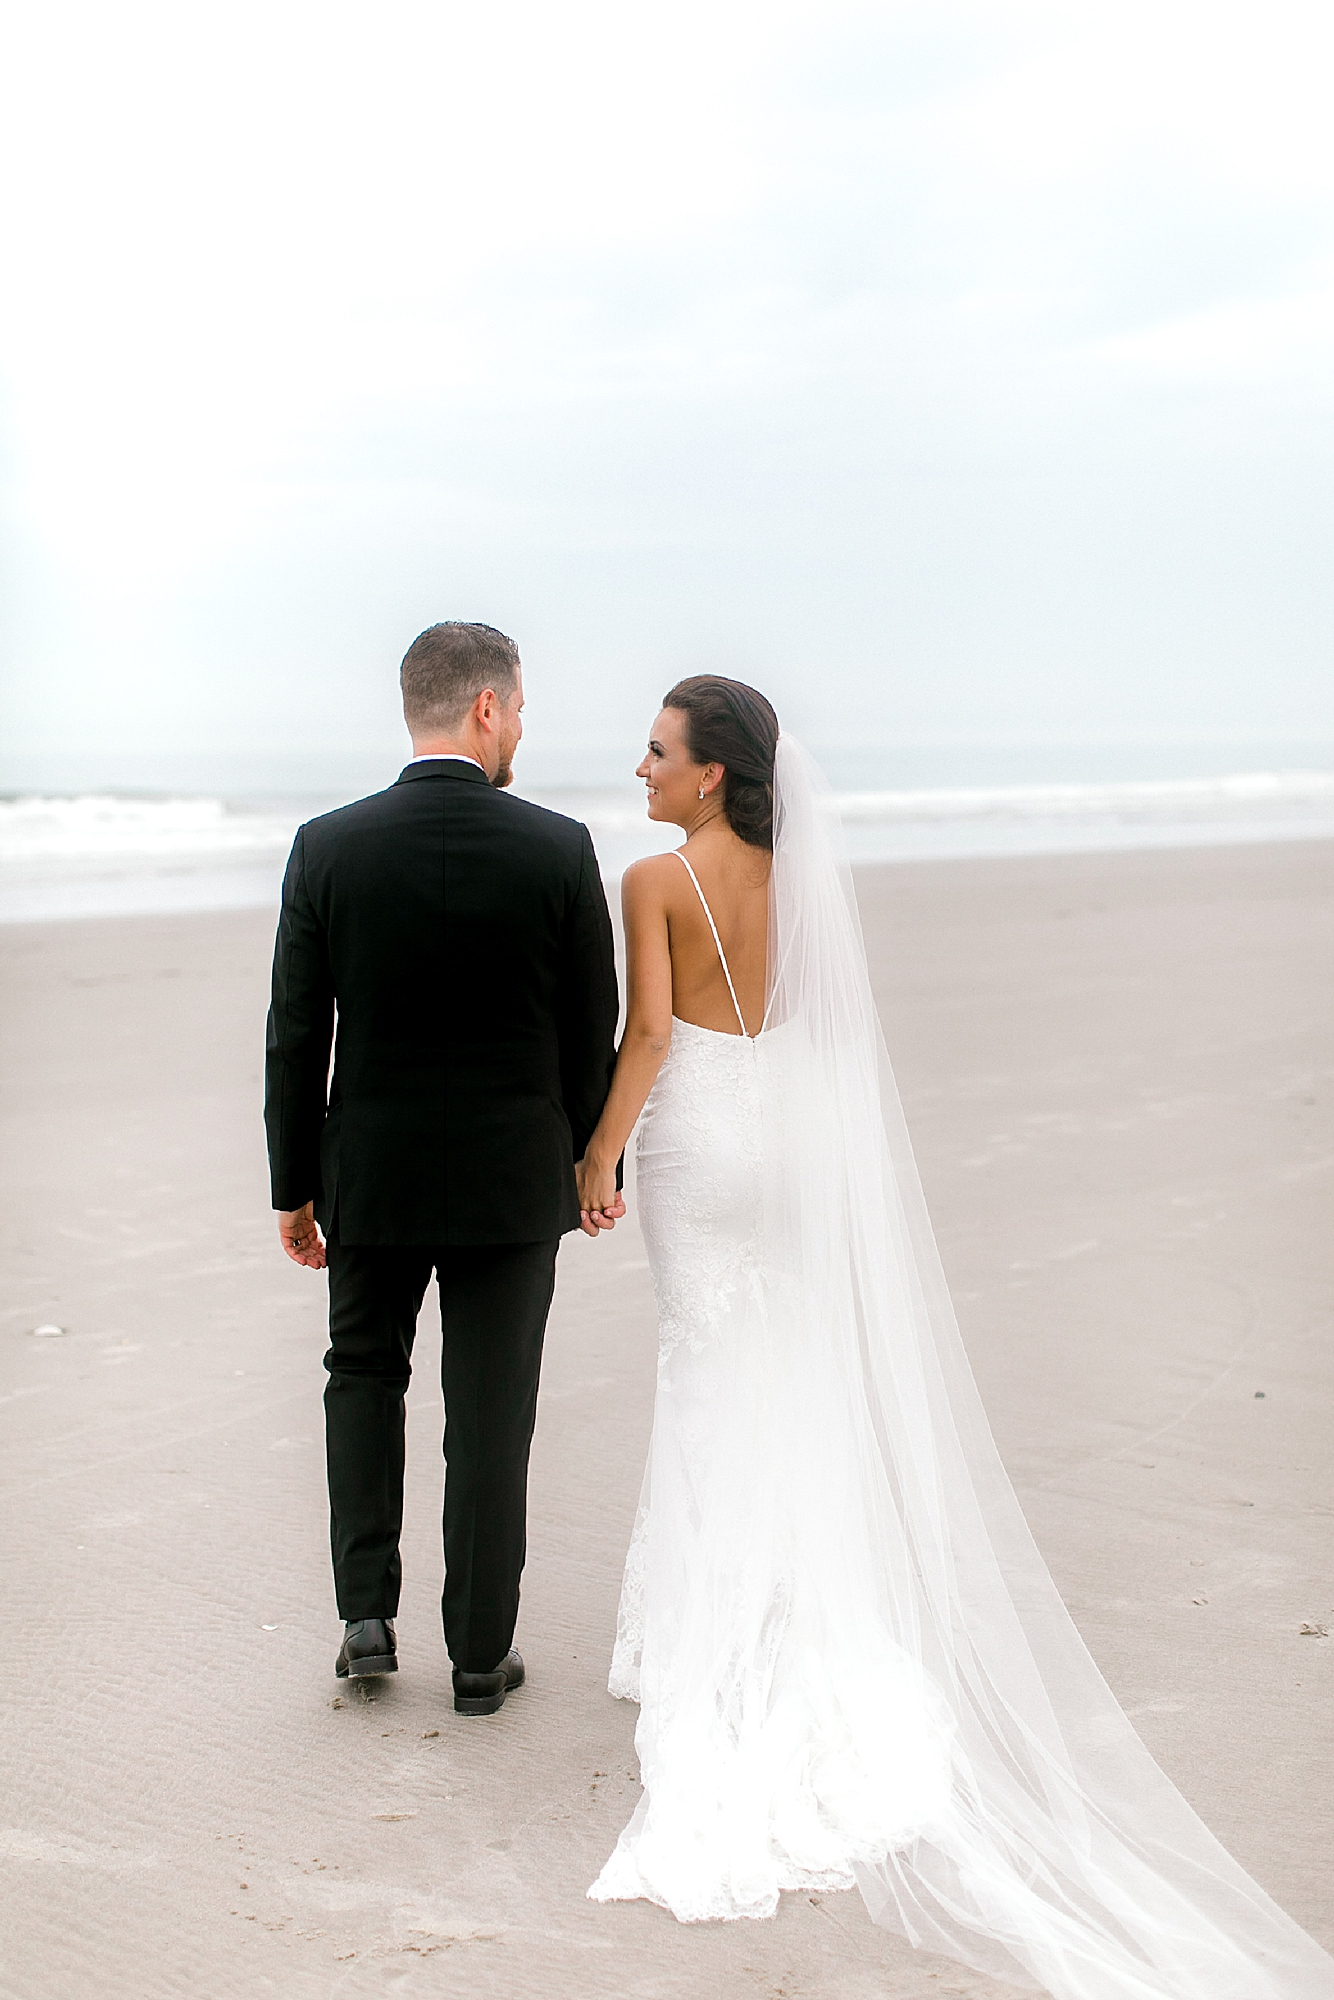 Candid and Stylish South Jersey Wedding Photography by Magdalena Studios 0039